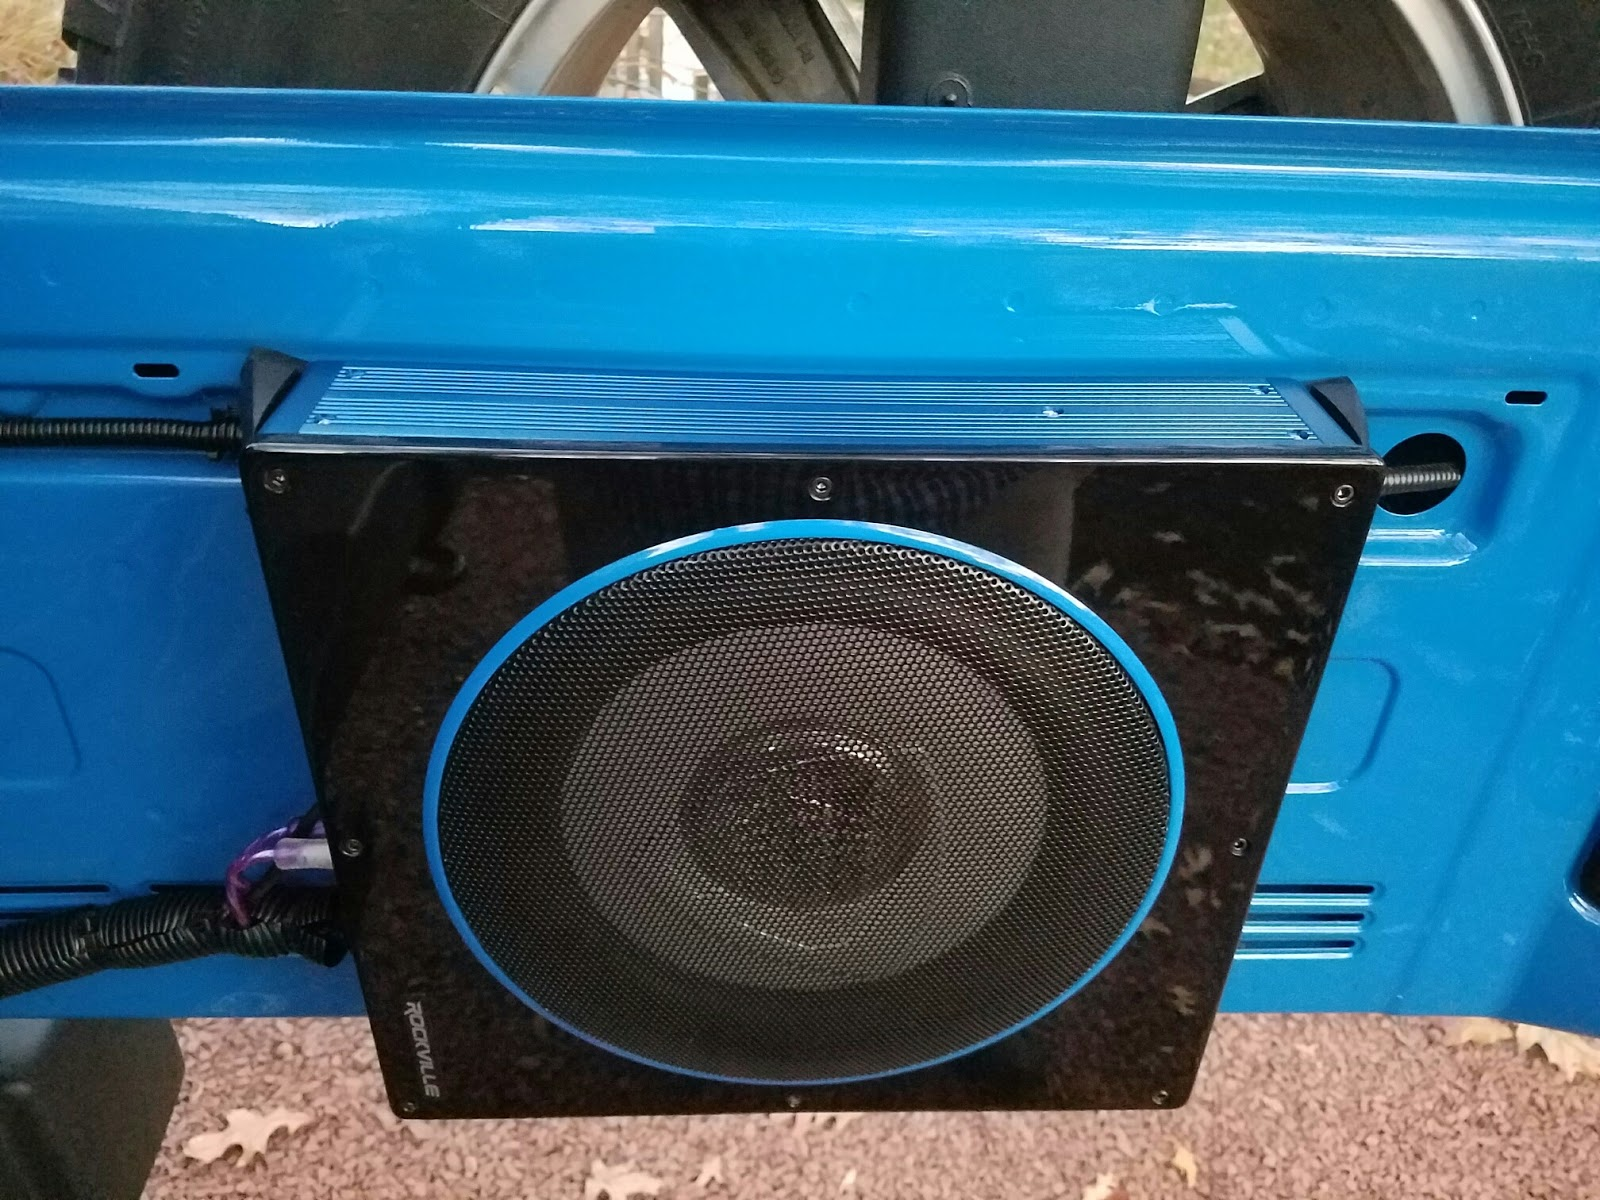 Randomly Learned Inexpensive Compact Subwoofer And Amp For 2 Door Jeep Wrangler Jk Rear Sub Parts List A Amplifier Install Of 1 Rockville 10 800 Watt Slim Profile 115